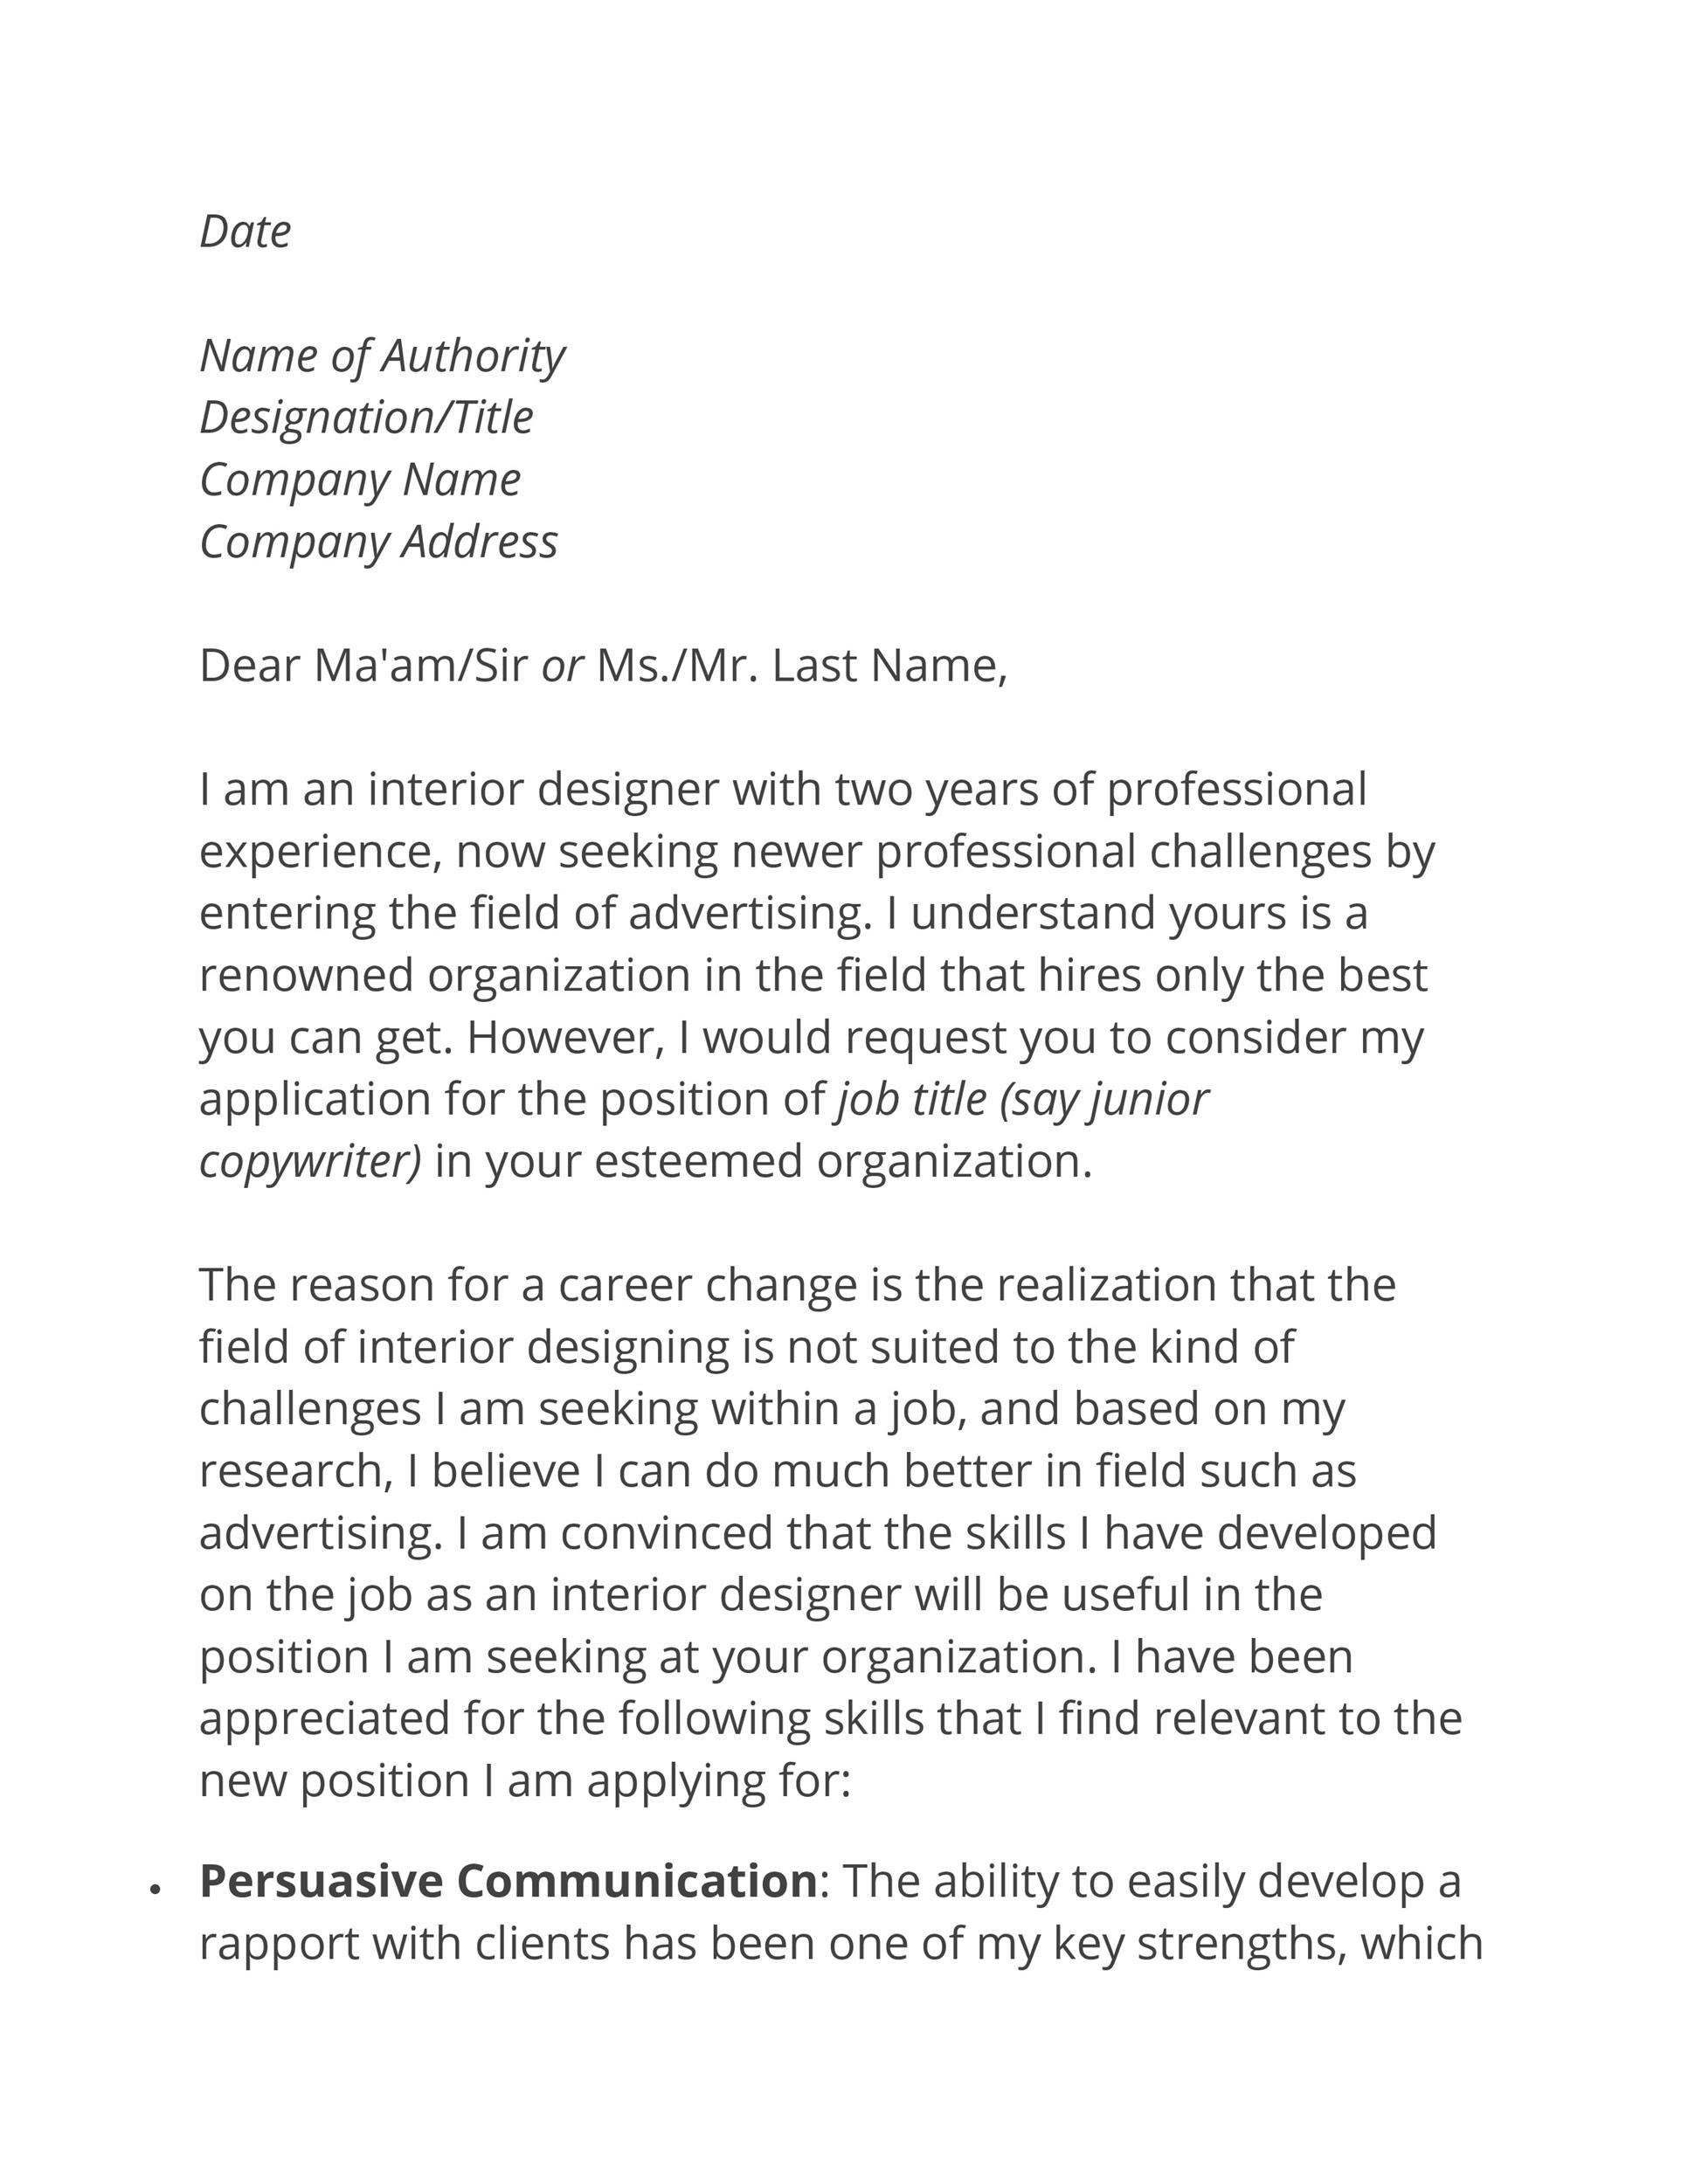 Free career change cover letter 20